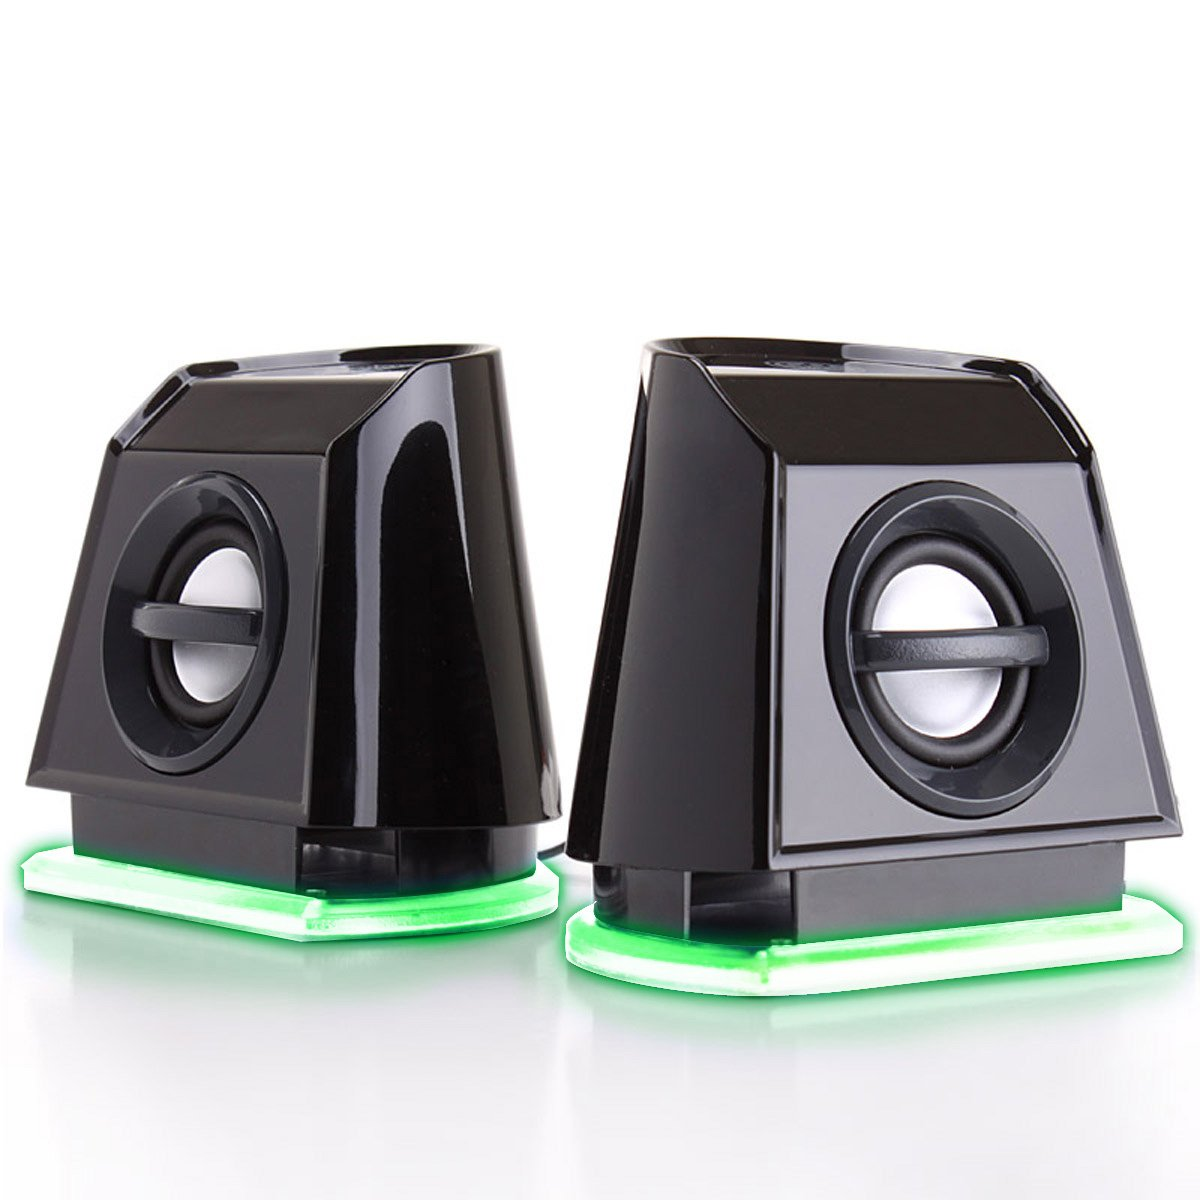 GOgroove 2MX LED Computer Speakers with Powered Subwoofer, Green Glowing Lights and Stereo Sound - Wired 3.5mm Audio Input Connection, USB Powered for PC, Desktop and Laptop Computers